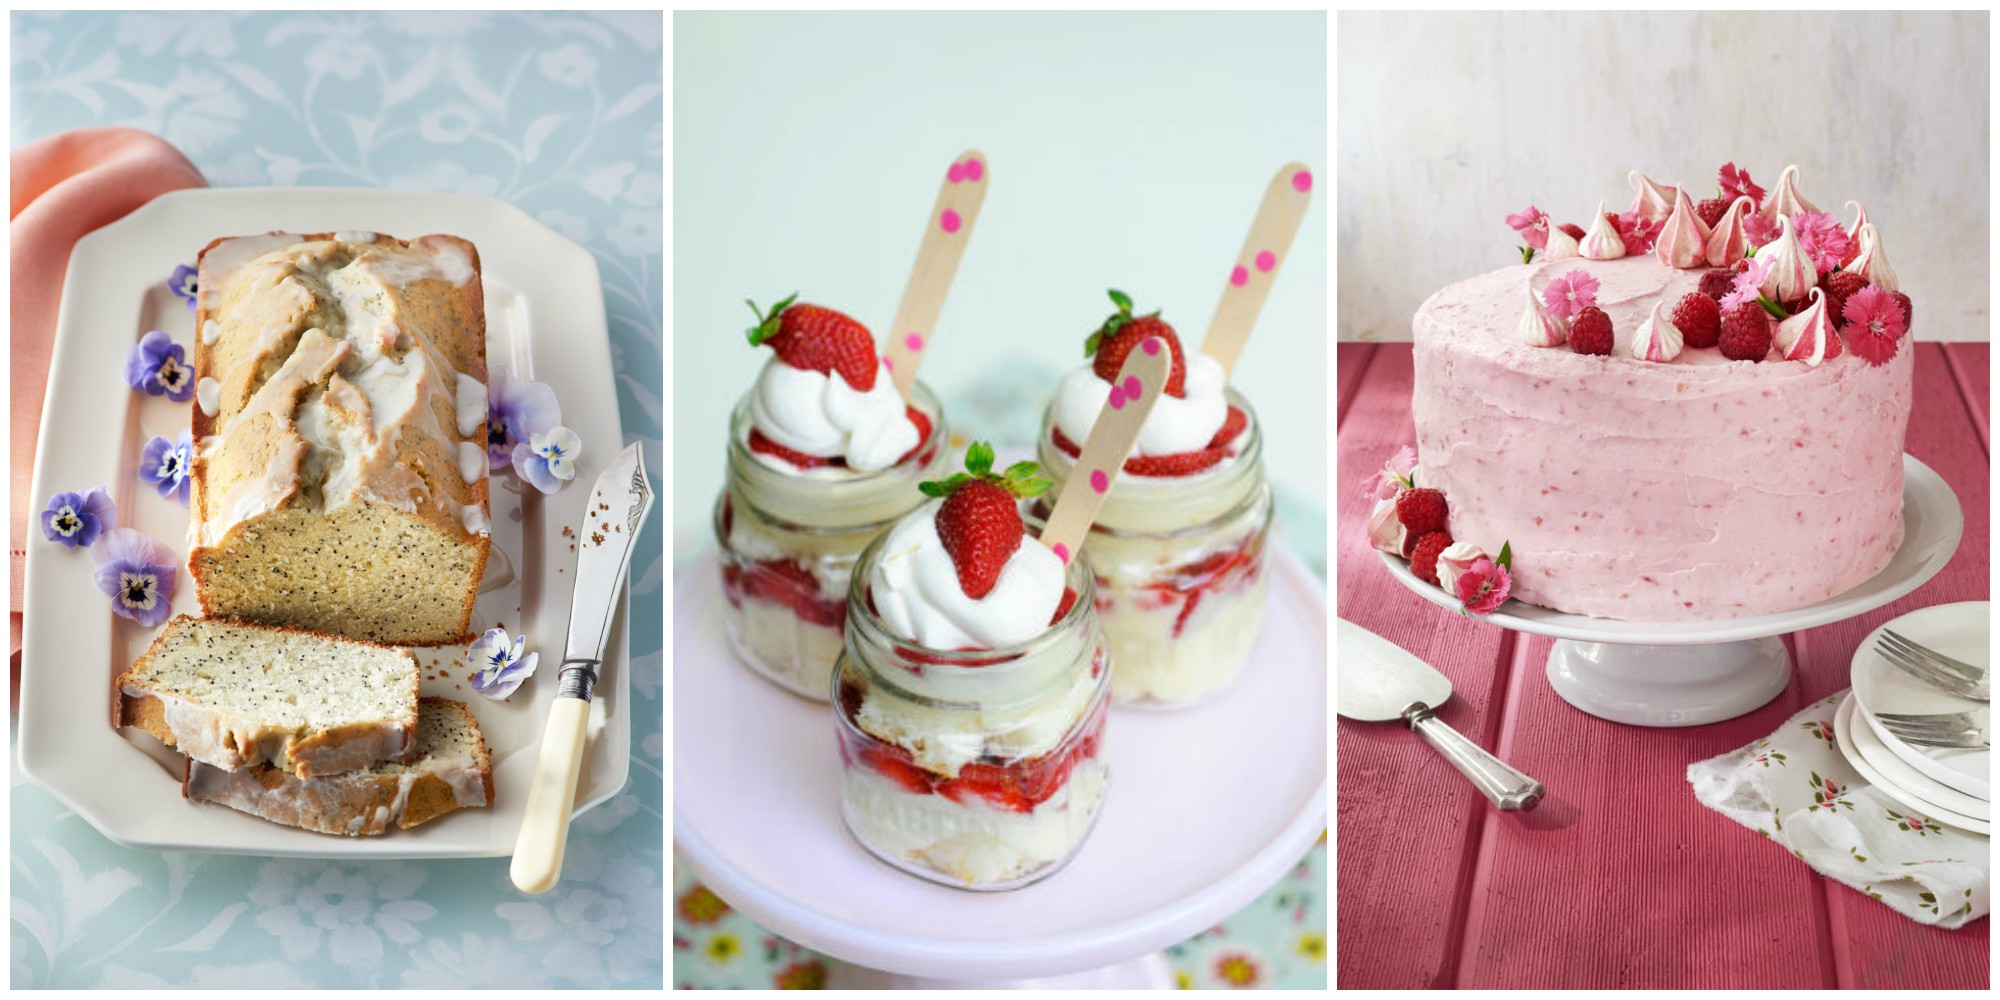 Mothers Day Desserts  12 Best Mother s Day Desserts Easy Ideas for Mothers Day